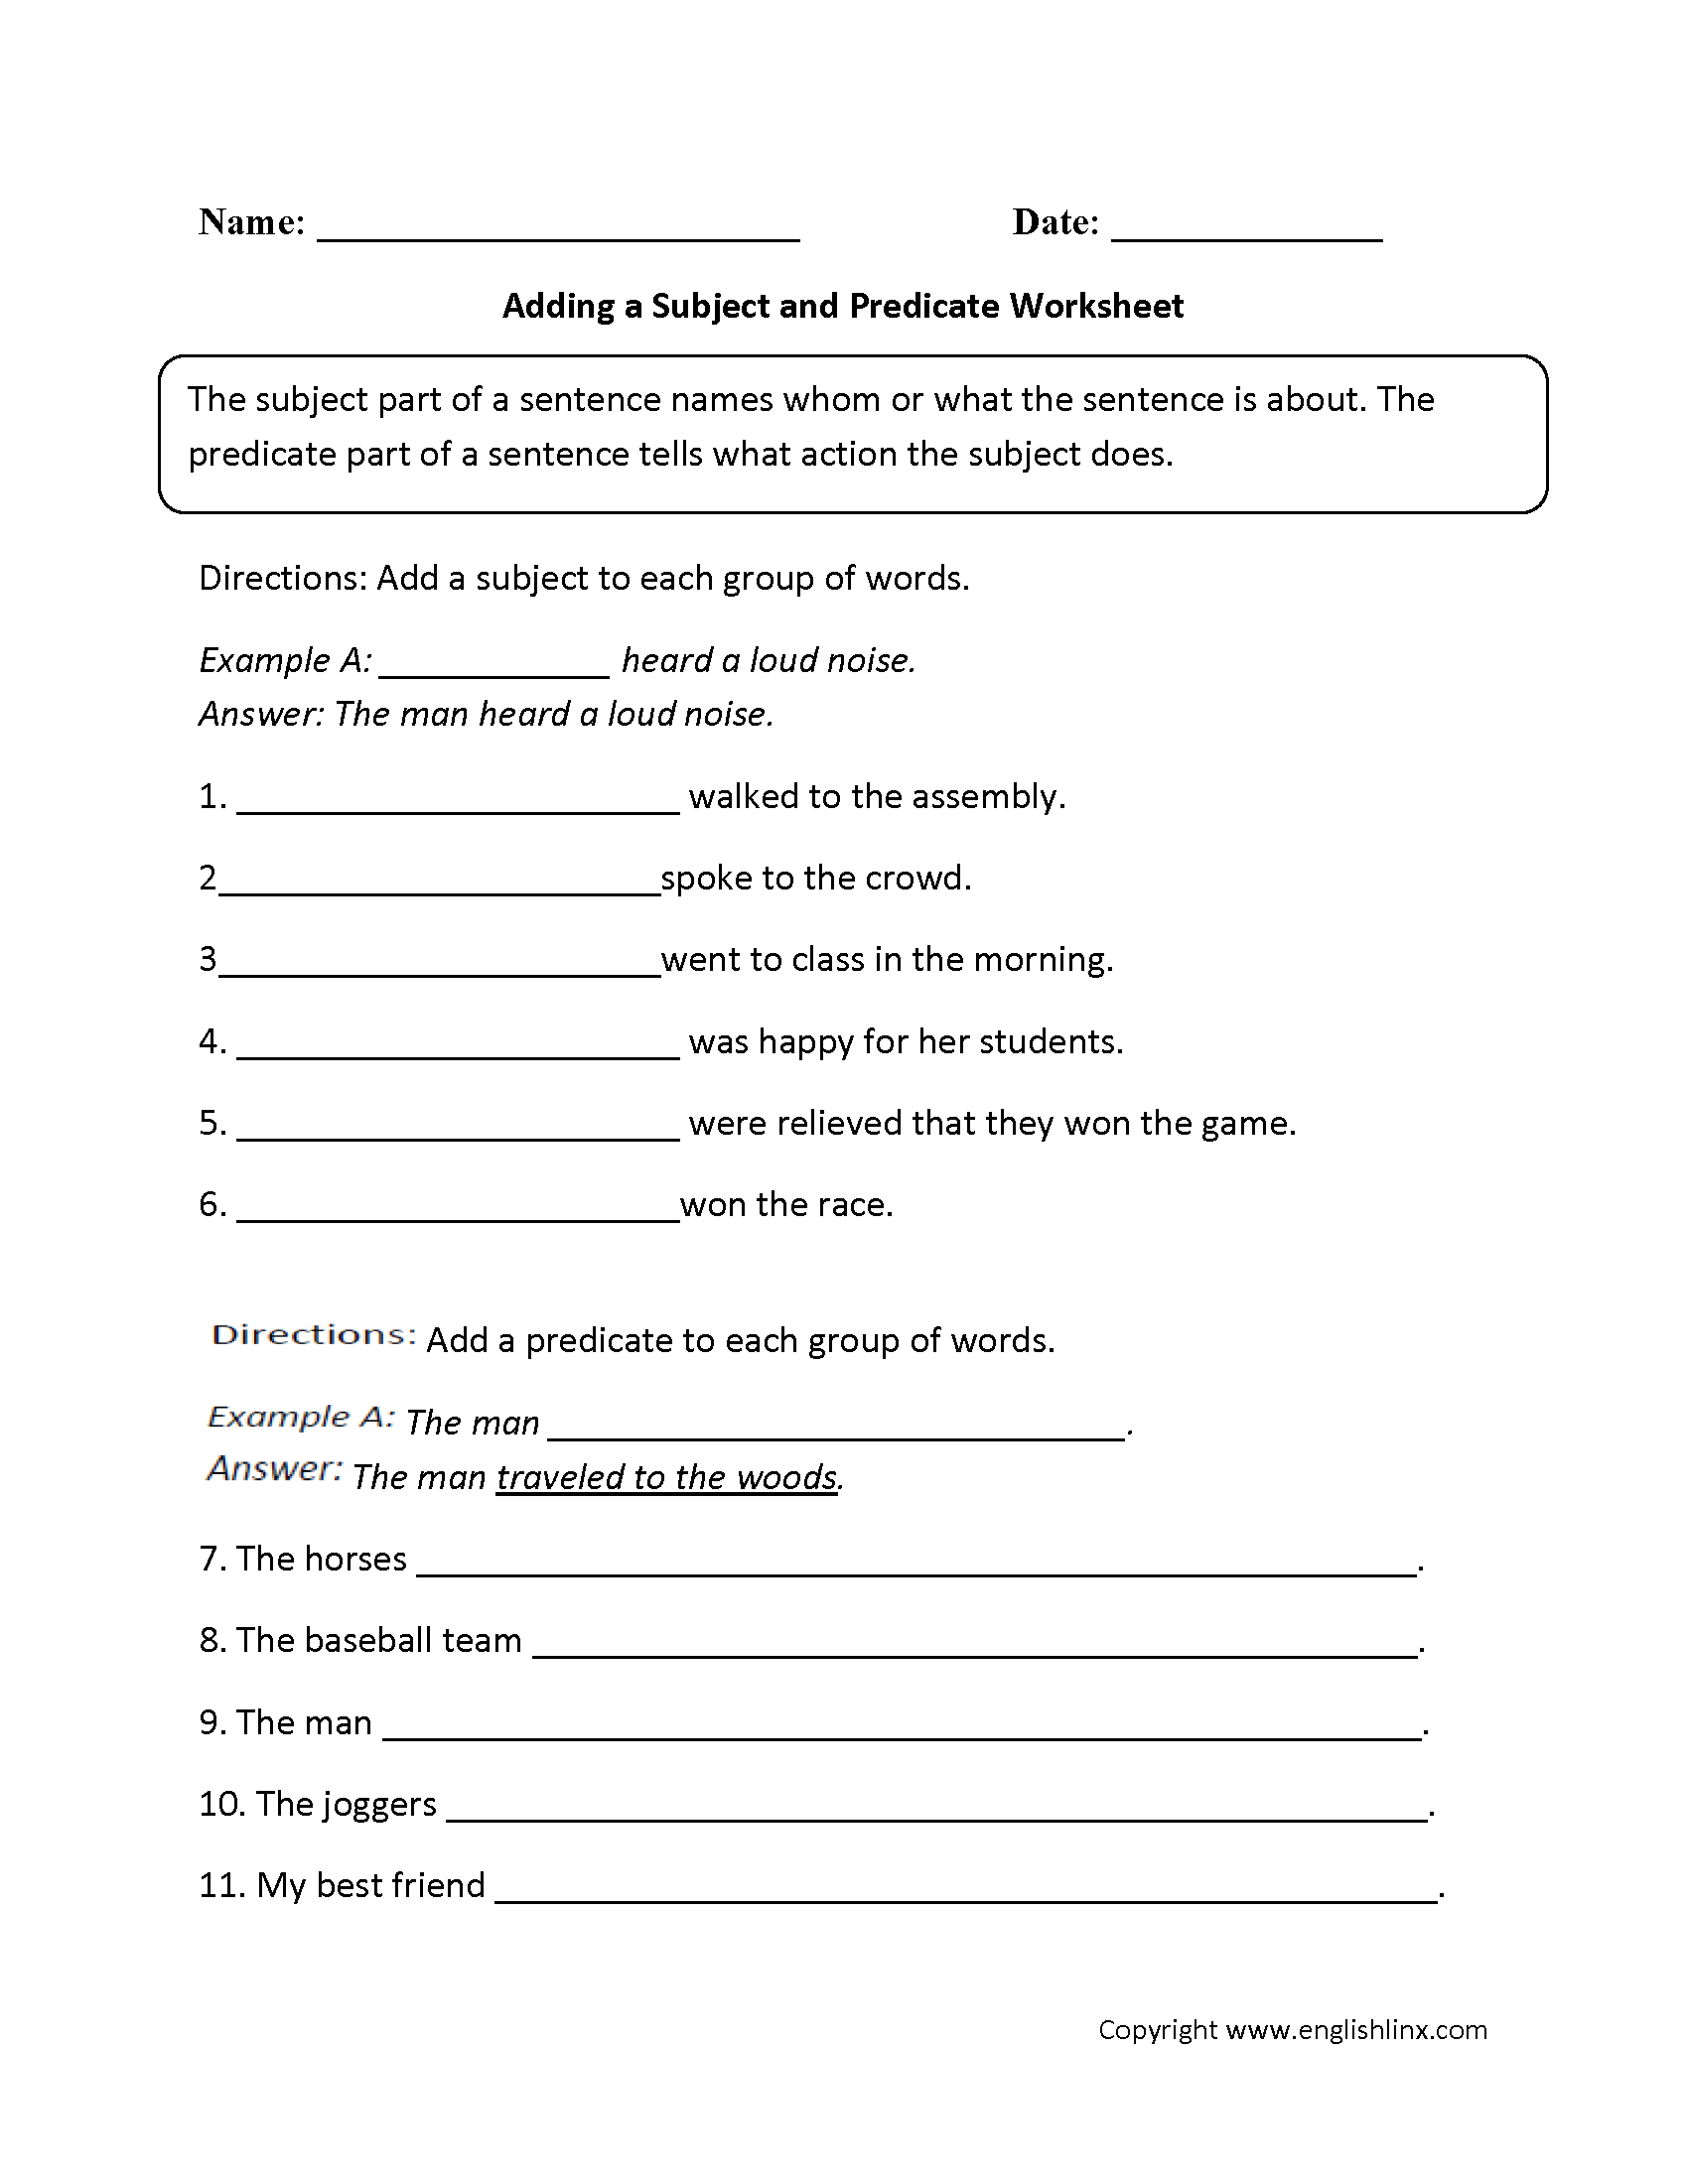 Worksheets Complete Subject And Predicate Worksheets adding a subject and predicate worksheet englishlinx com board these worksheets are great for working with use worksheet